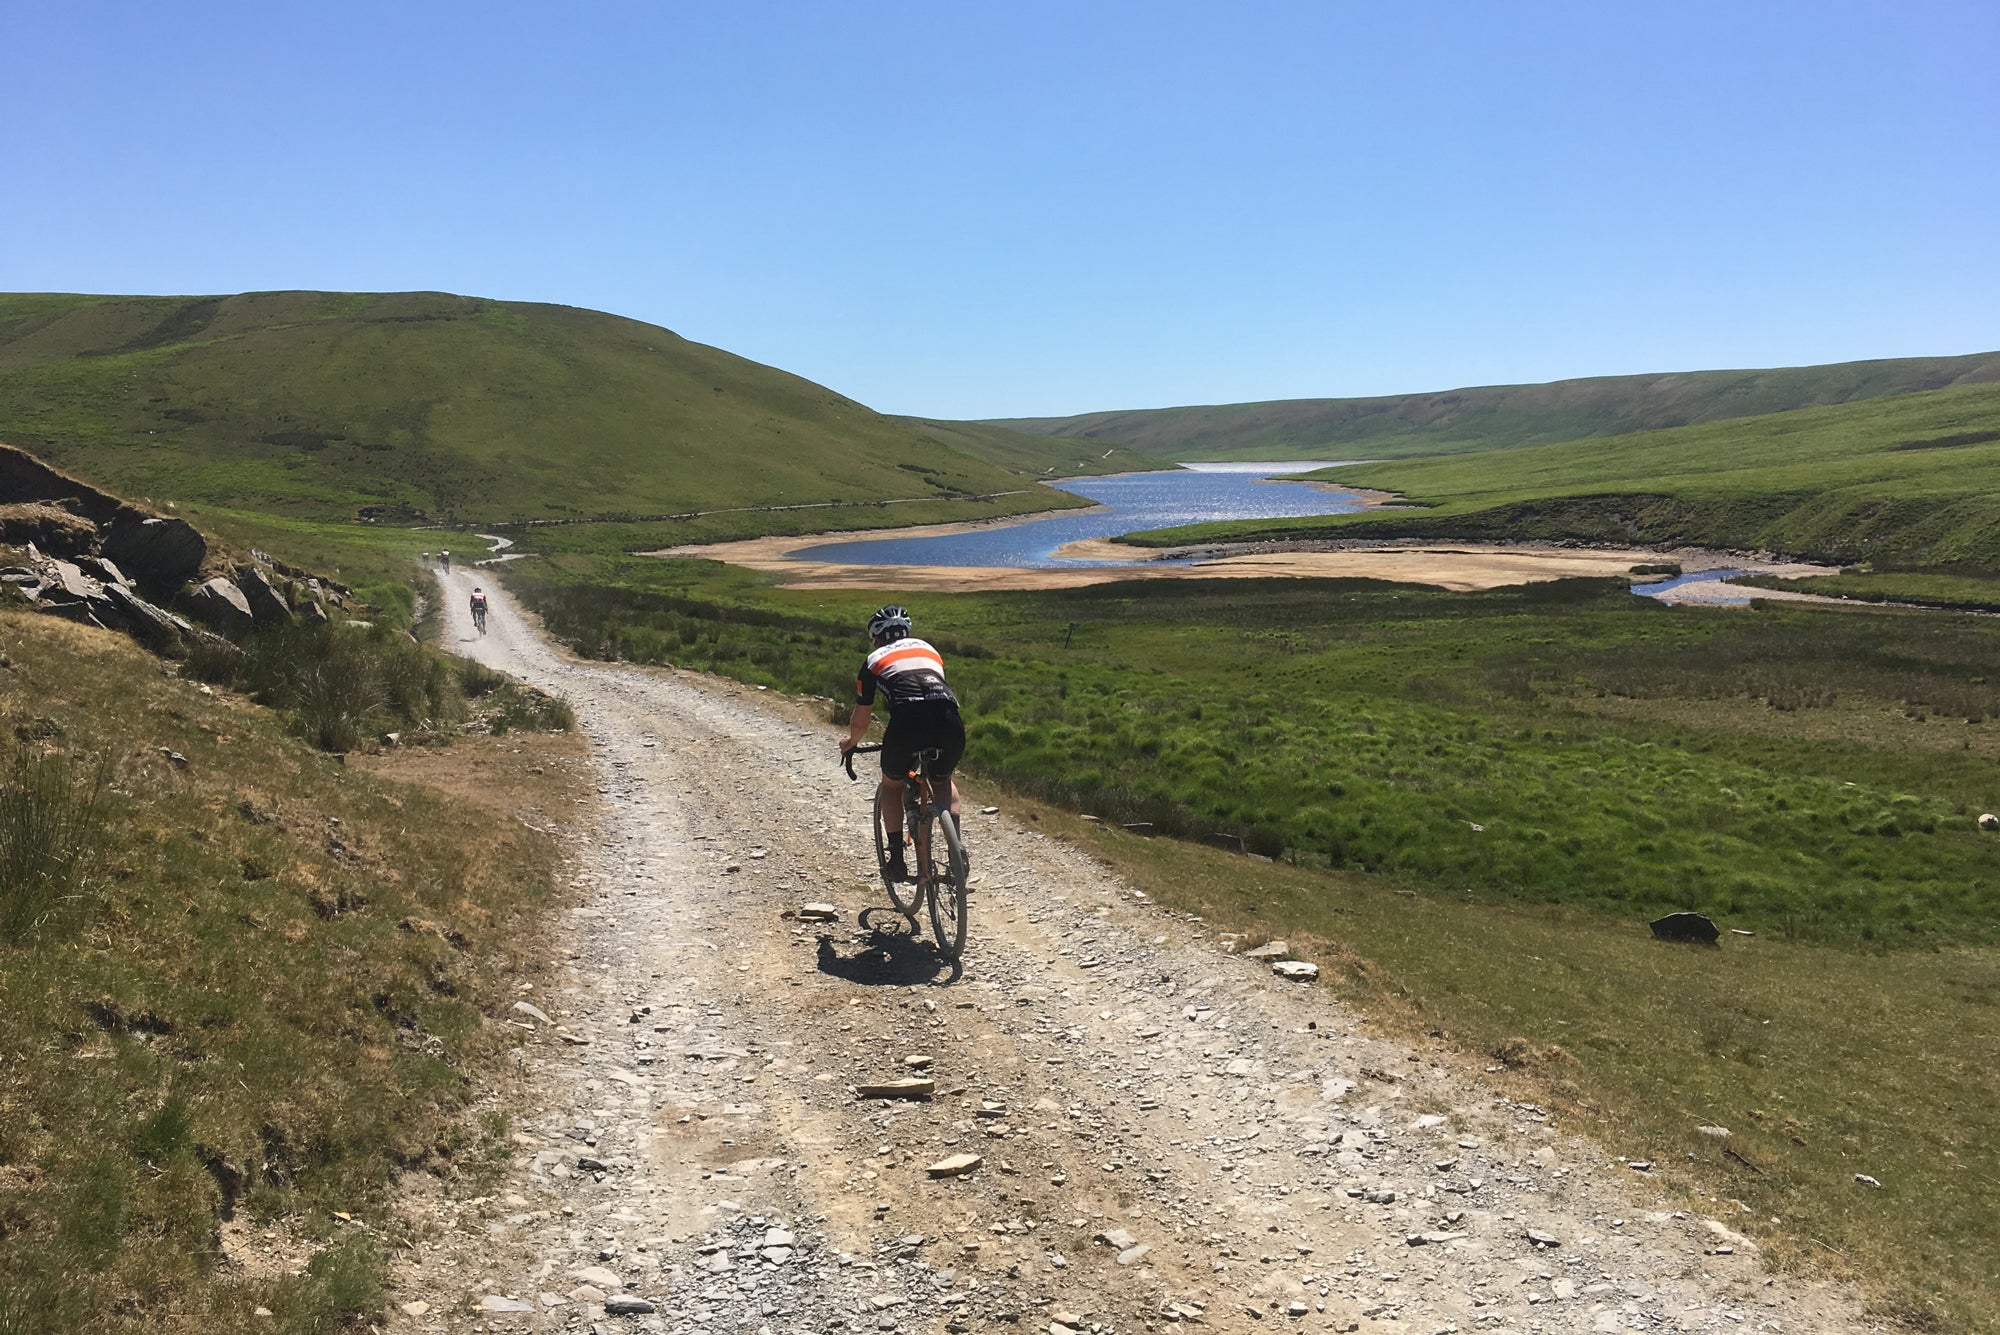 GRAVEL RIDING HEAVEN? ROB HARWOOD HEADS OUT TO WALES